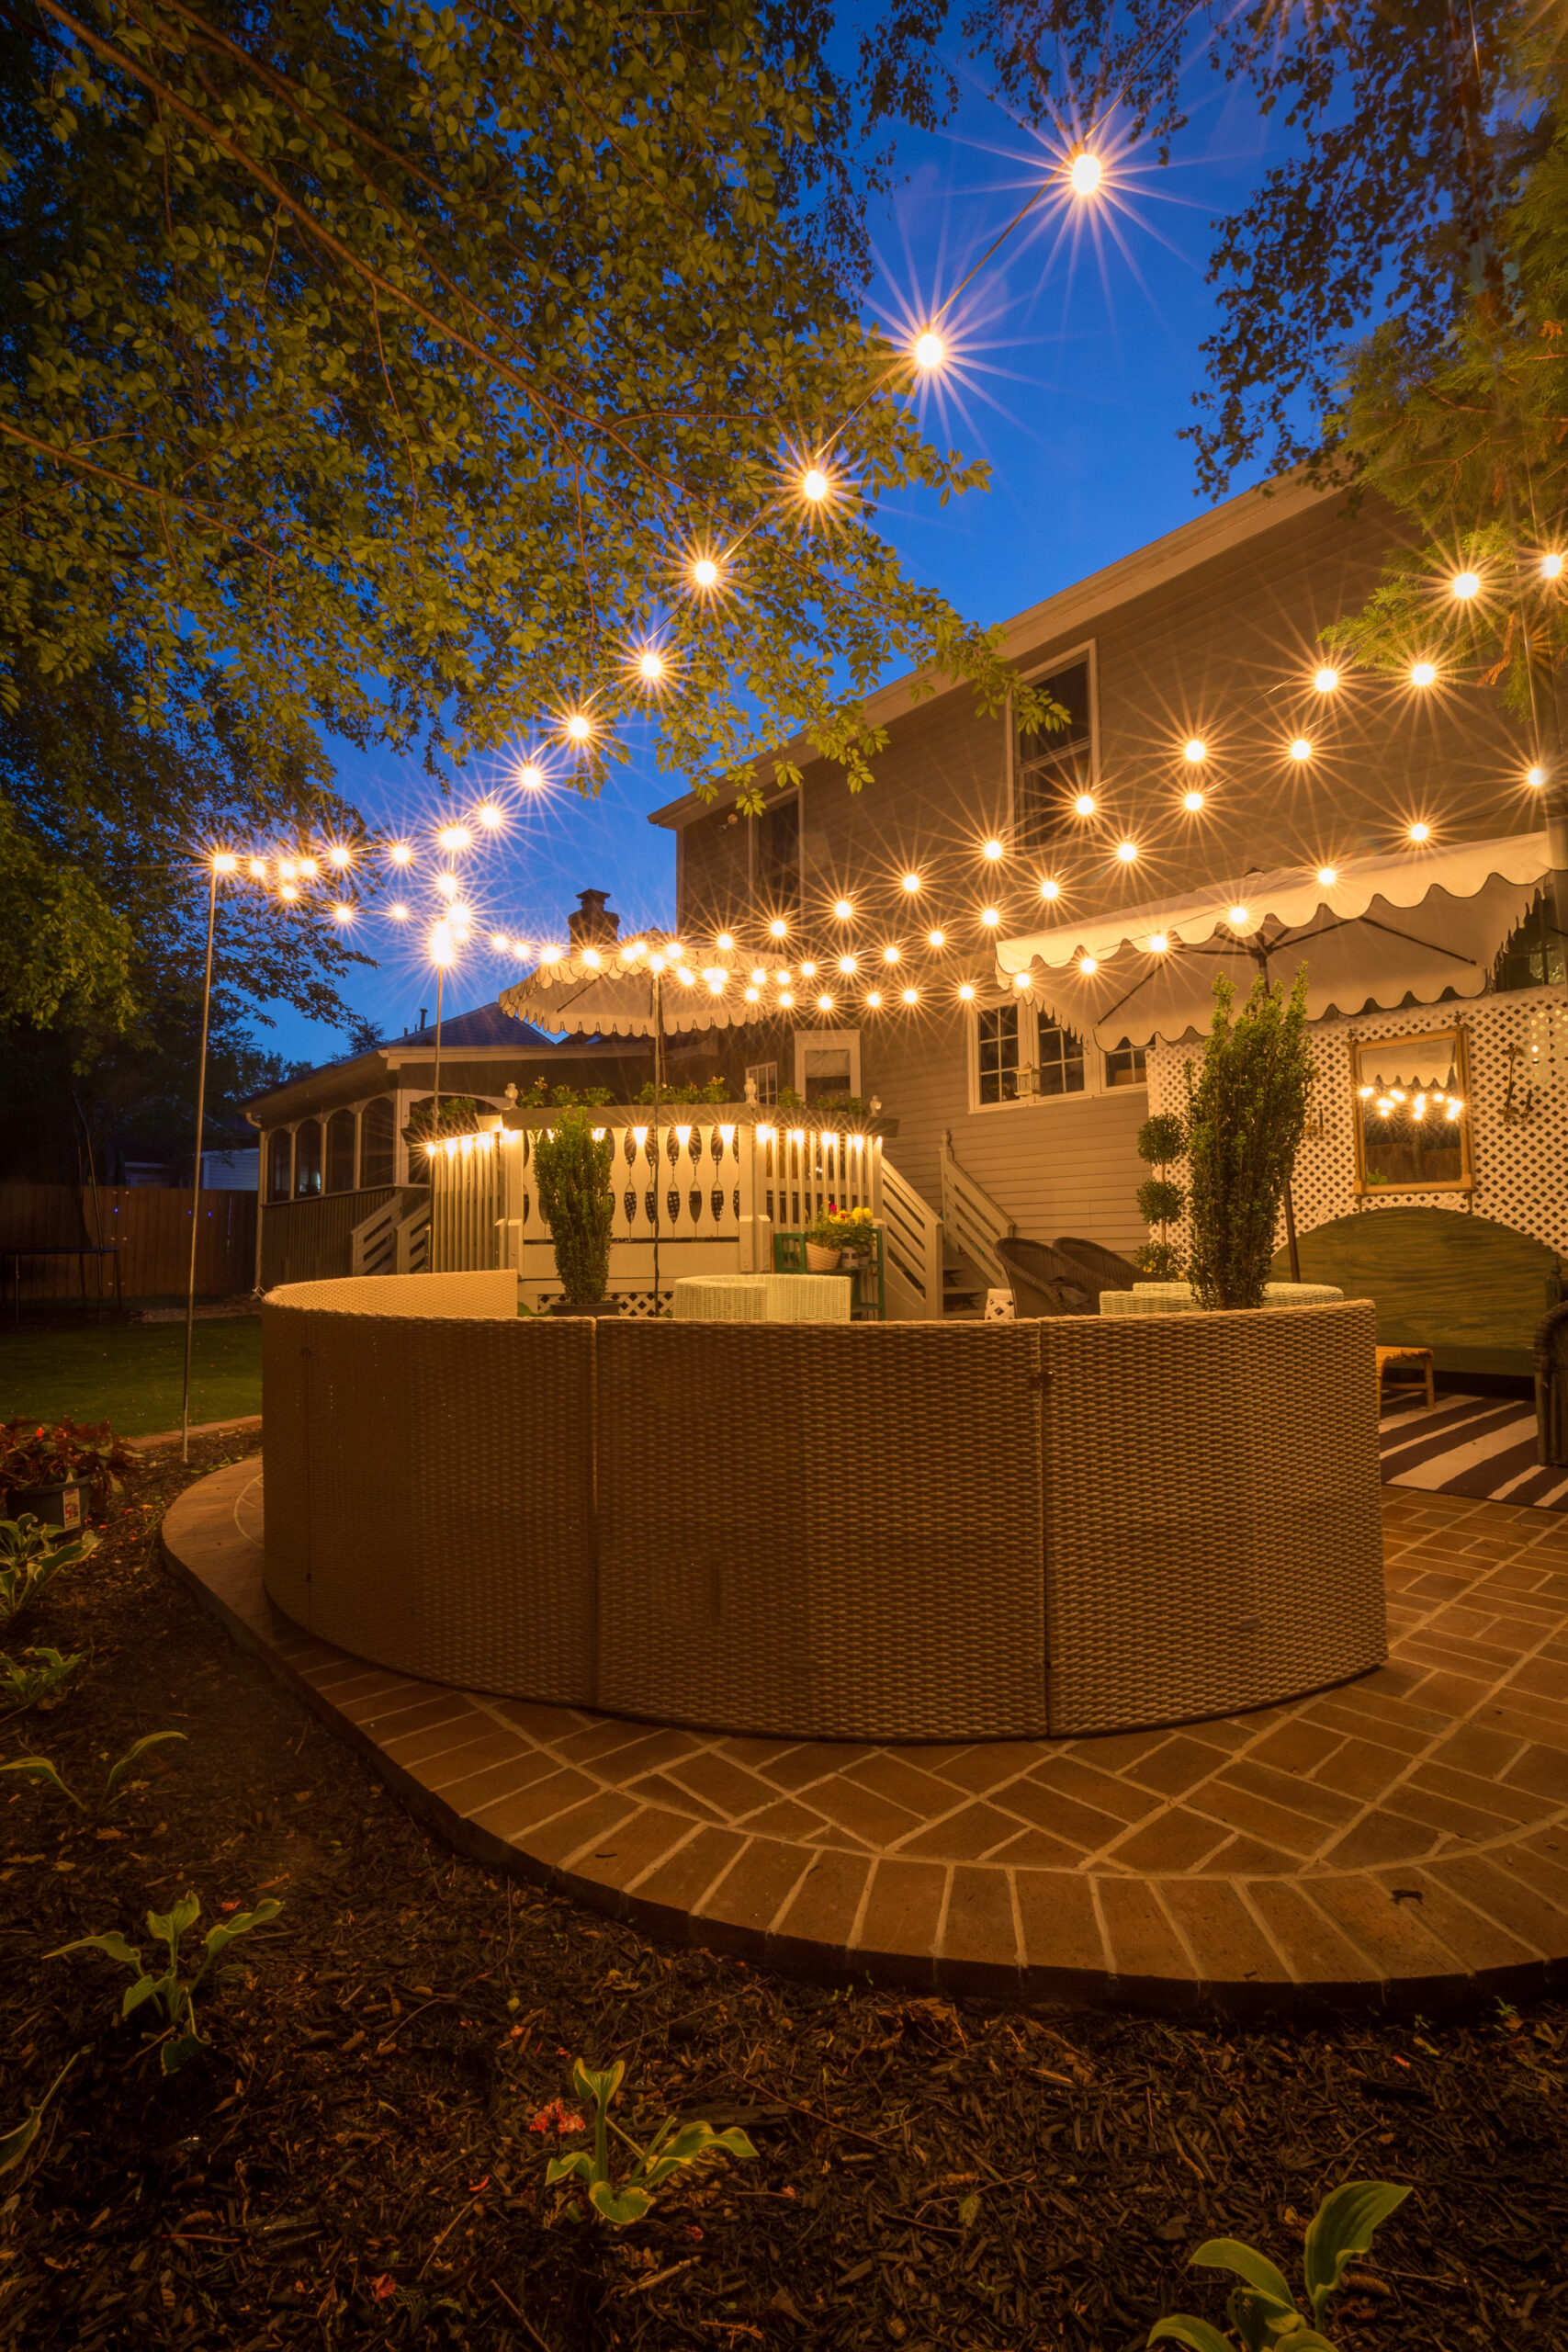 How to hang, backyard lighting, ideas, string lights, party lights, best fire pit, fire pit, outdoor entertaining,